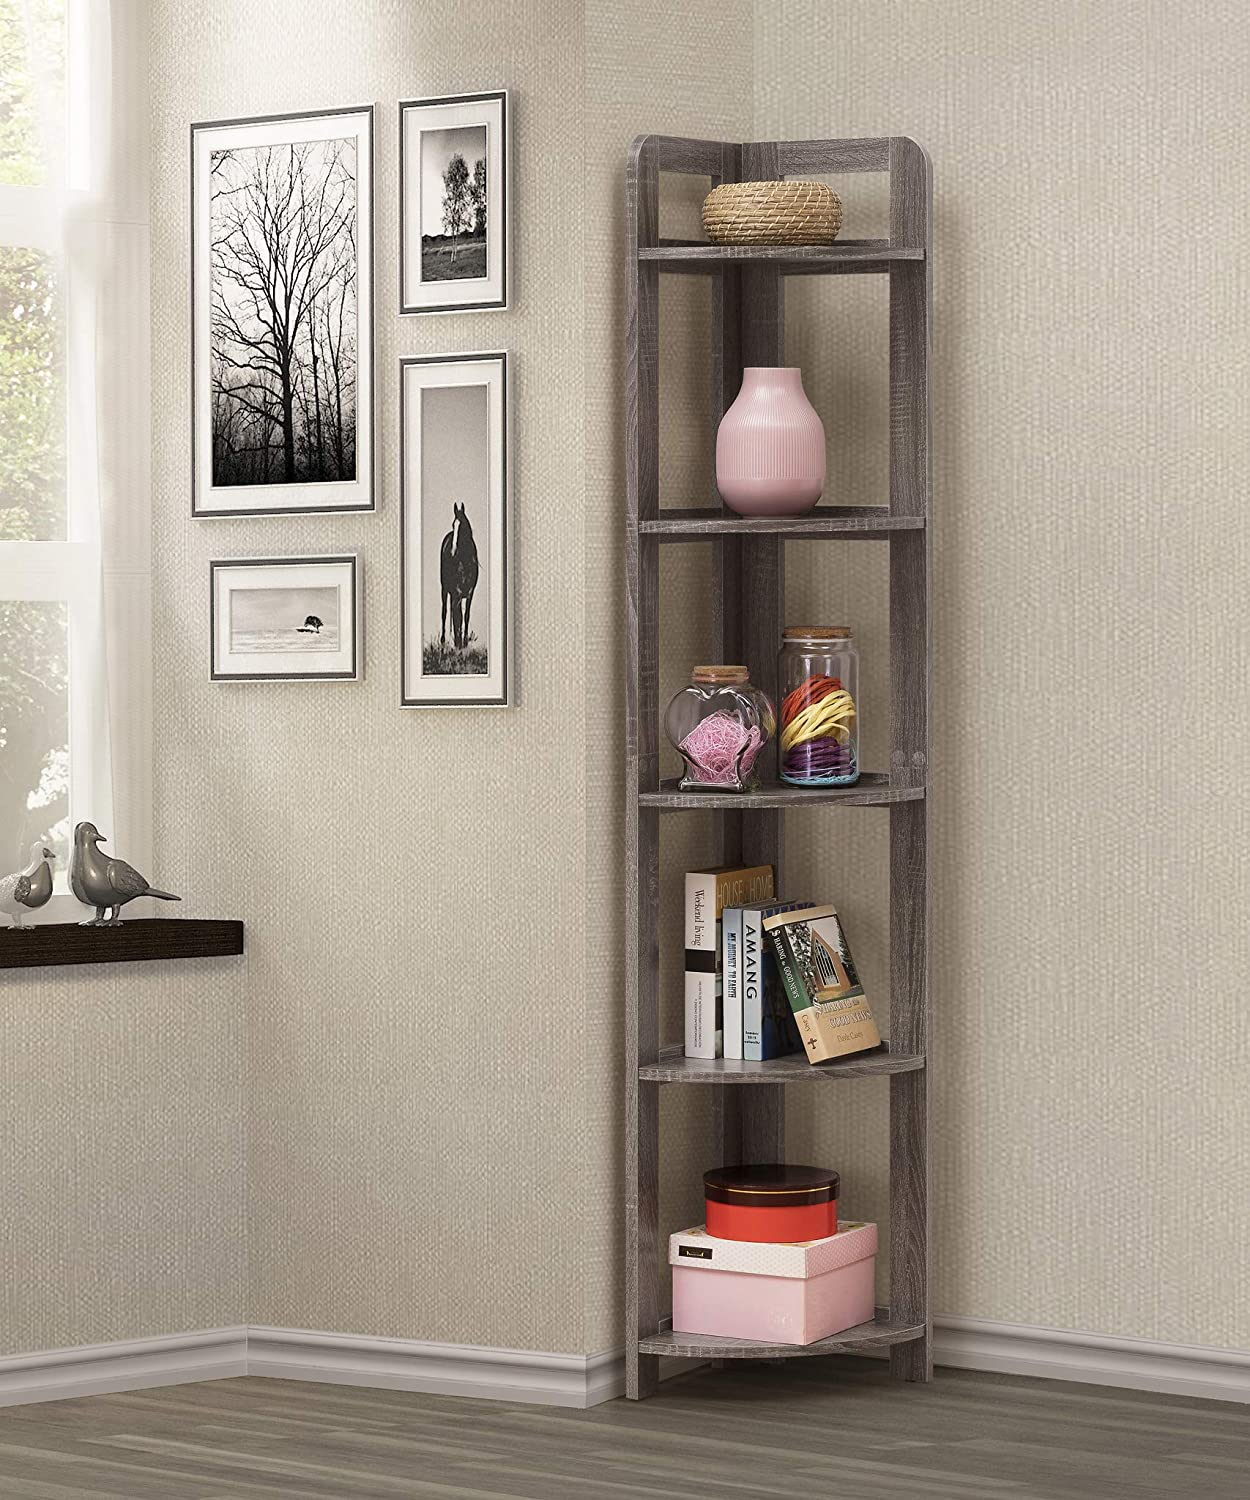 5 Tier Wood Wall Corner Bookshelf Bookcase Accent Etagere In Weathered Grey Finish By Raamzo Amazon Co Uk Kitchen Home